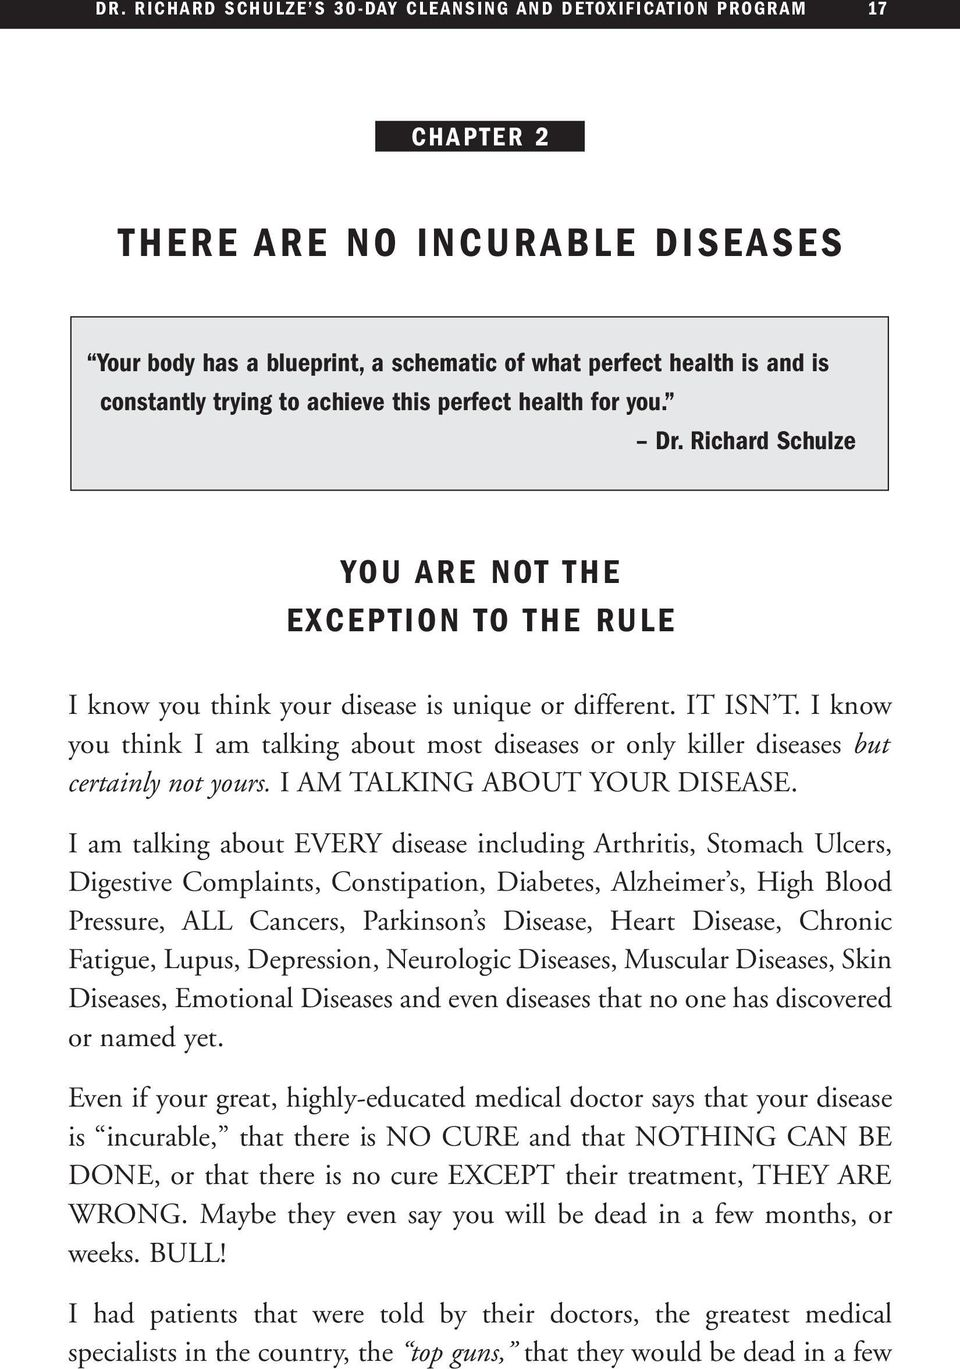 I know you think I am talking about most diseases or only killer diseases but certainly not yours. I AM TALKING ABOUT YOUR DISEASE.